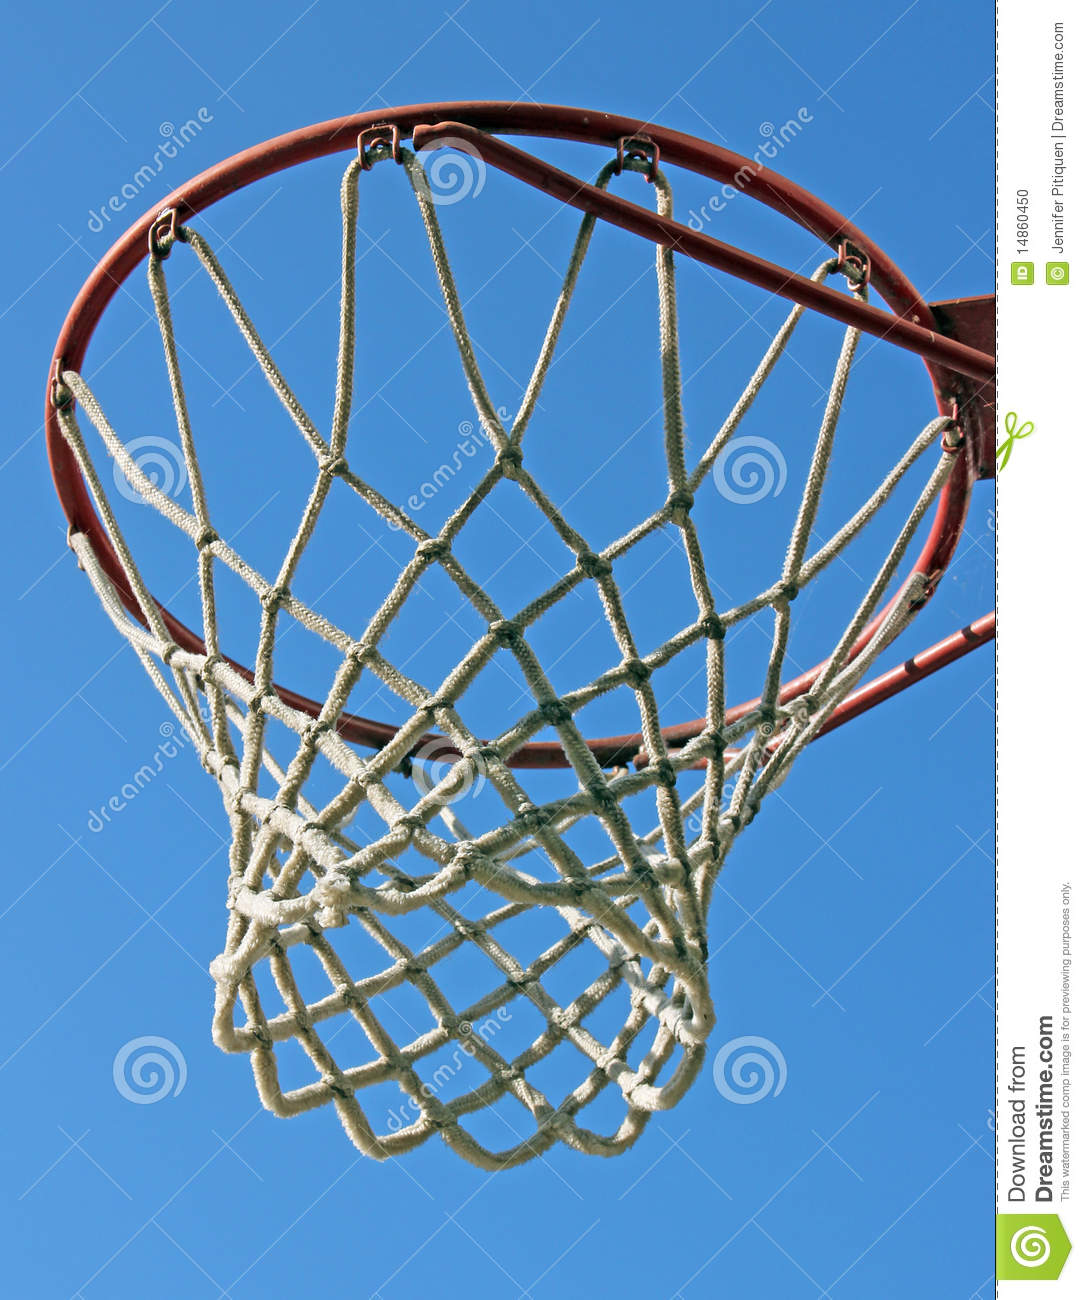 Basketball Net stock photo. Image of outdoor, play, sports ...